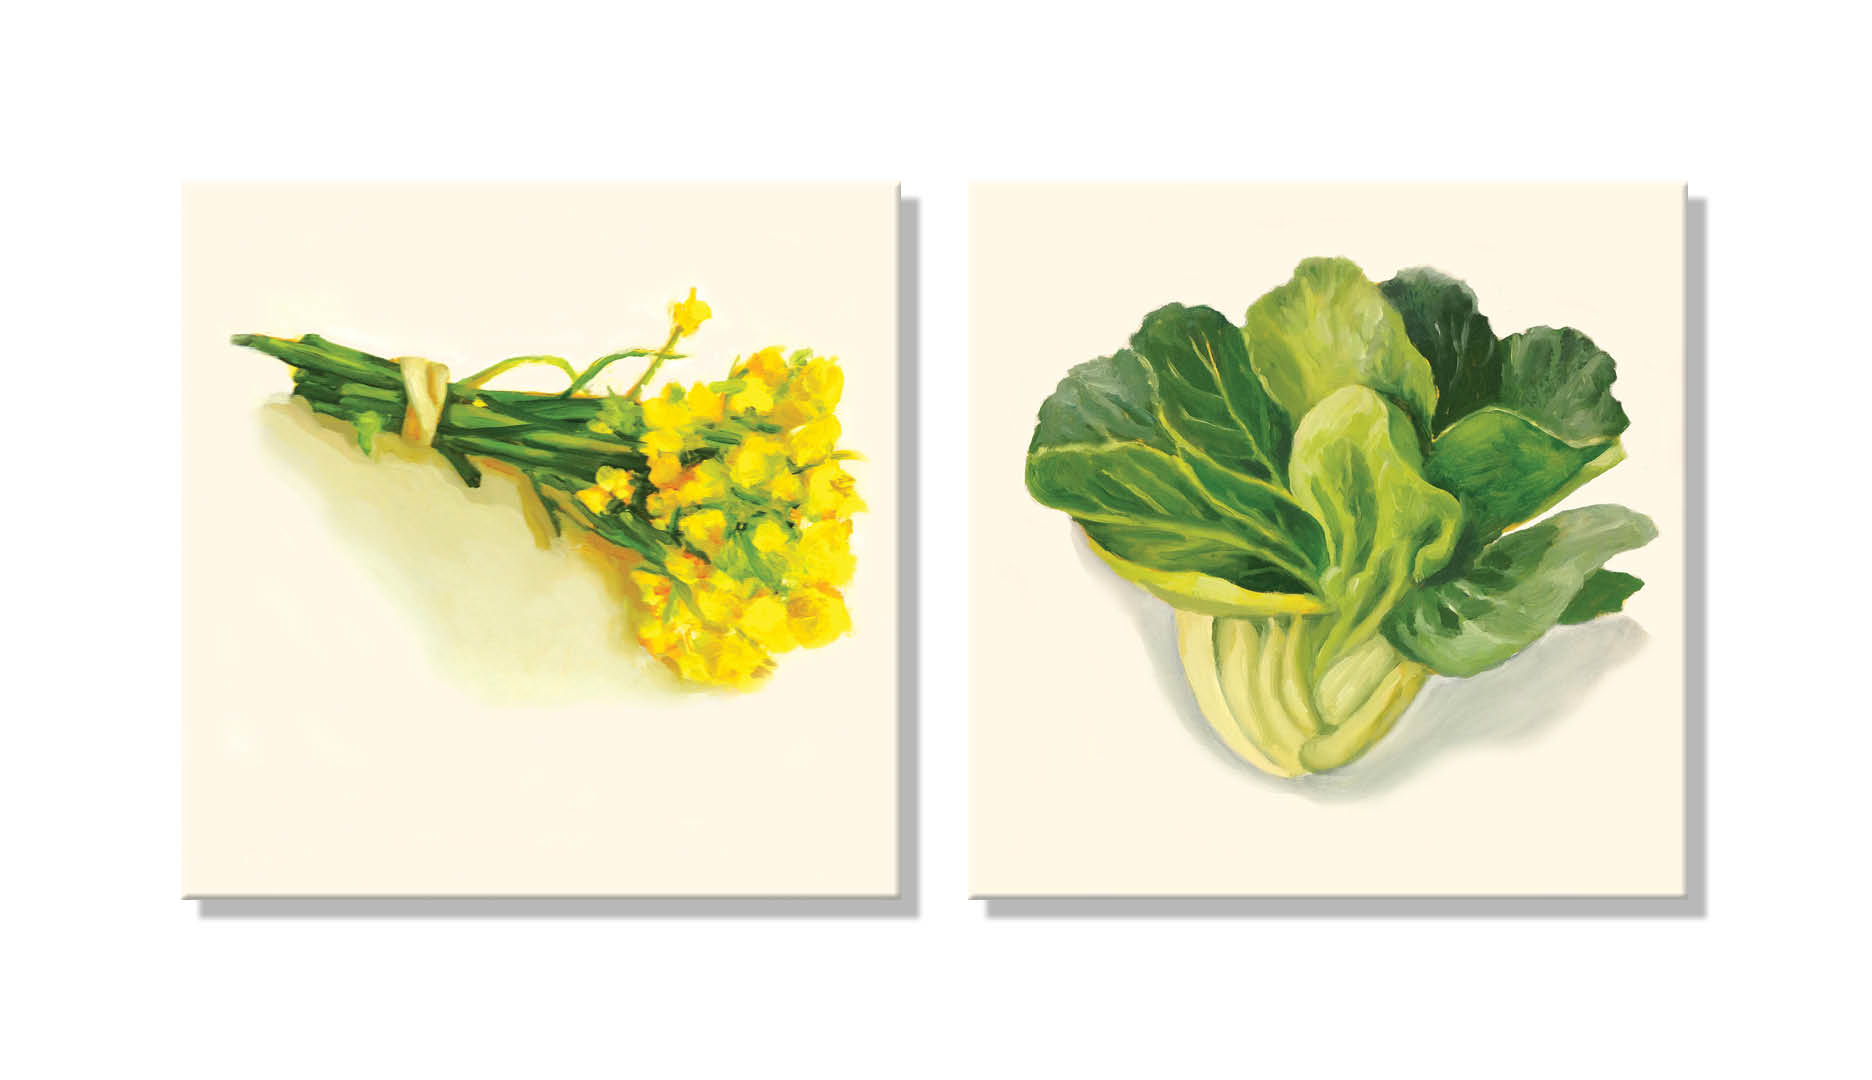 Rail Park Entry: Left:  Edible Flowers of the Bok Choy ; Right:  Floating Bok Choy ; both oil on panel, 10 x 10 inches each